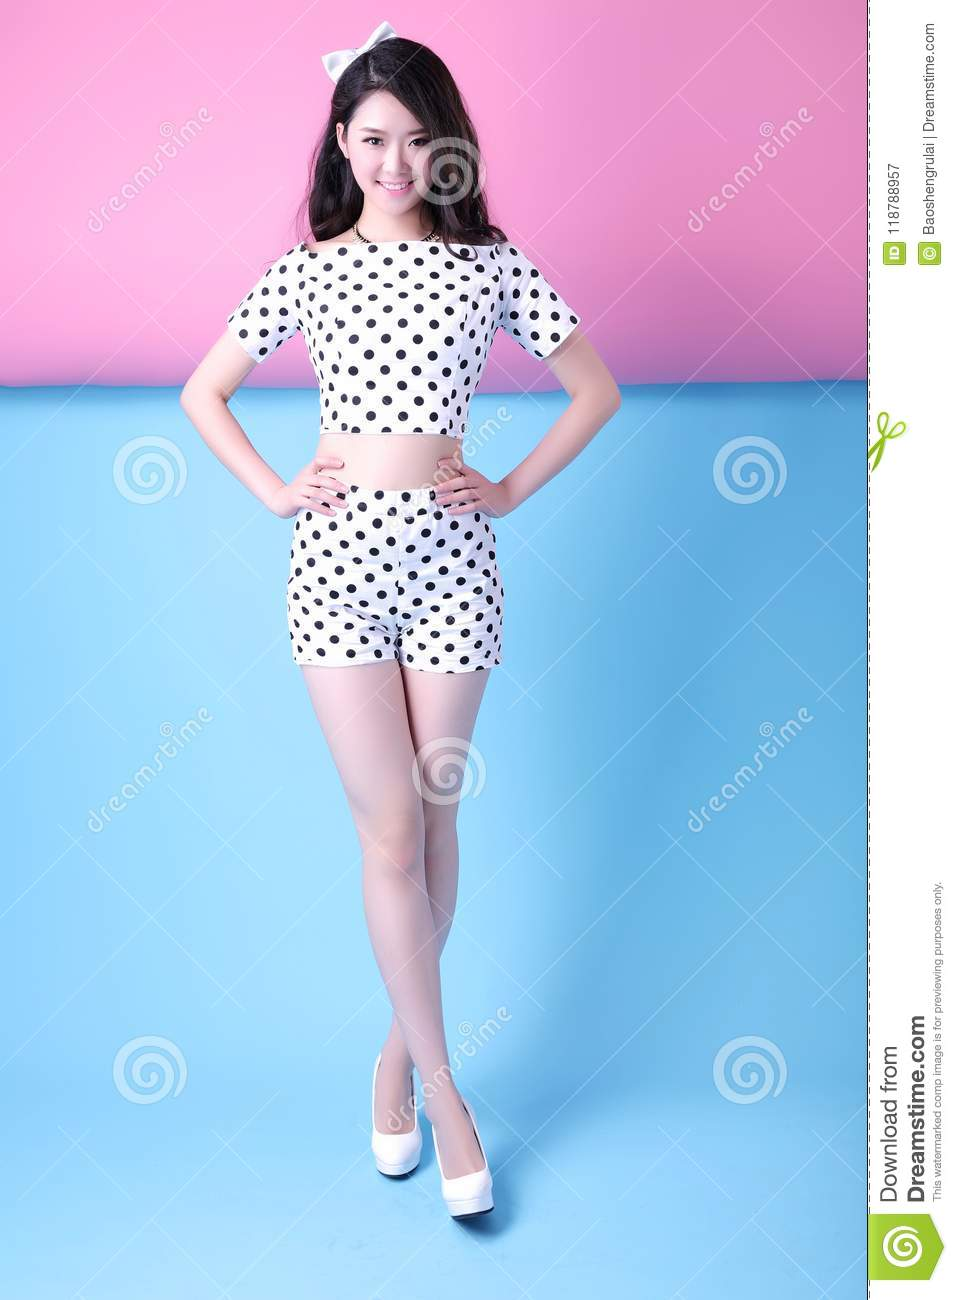 Asian Women S Spotted Summer Wear Stock Image Image Of People Cute 118788957